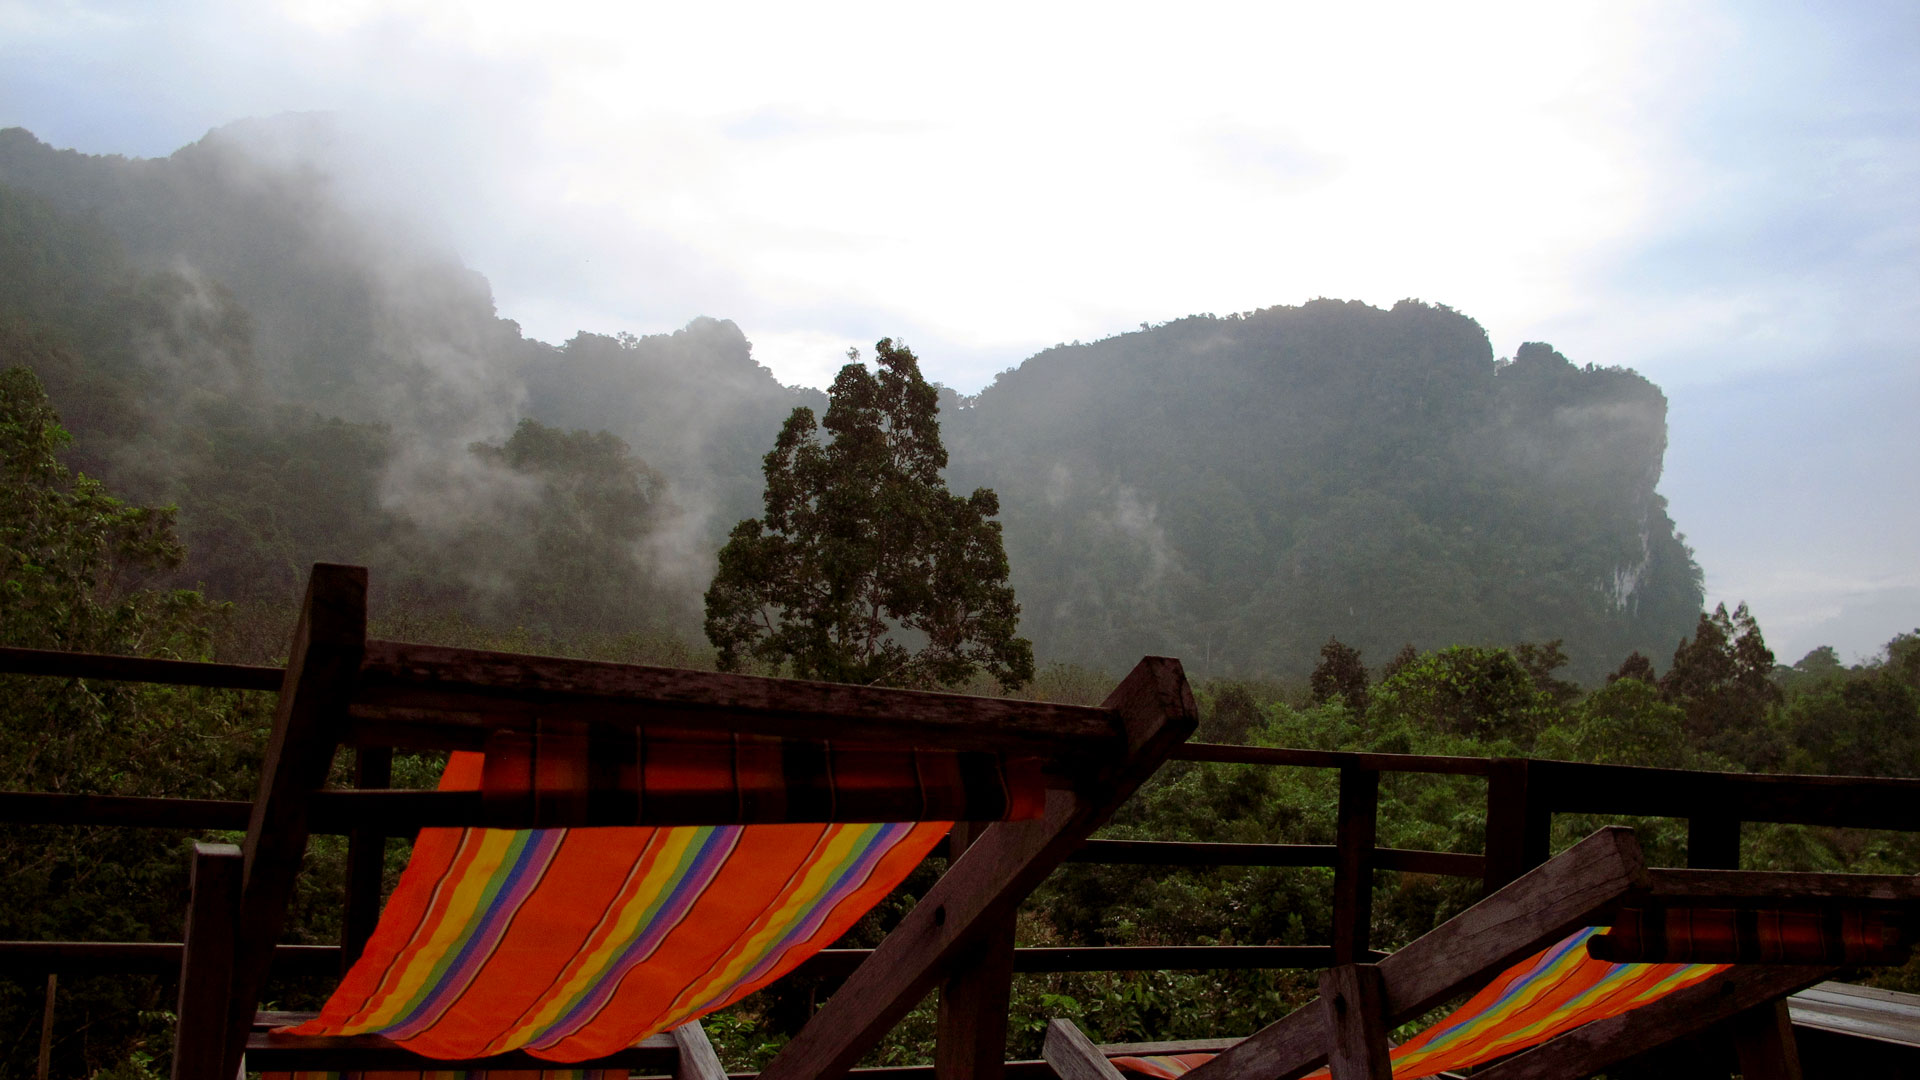 View from my room's balcony in Khao Sok resort. Photo by Ng Siew Cheng